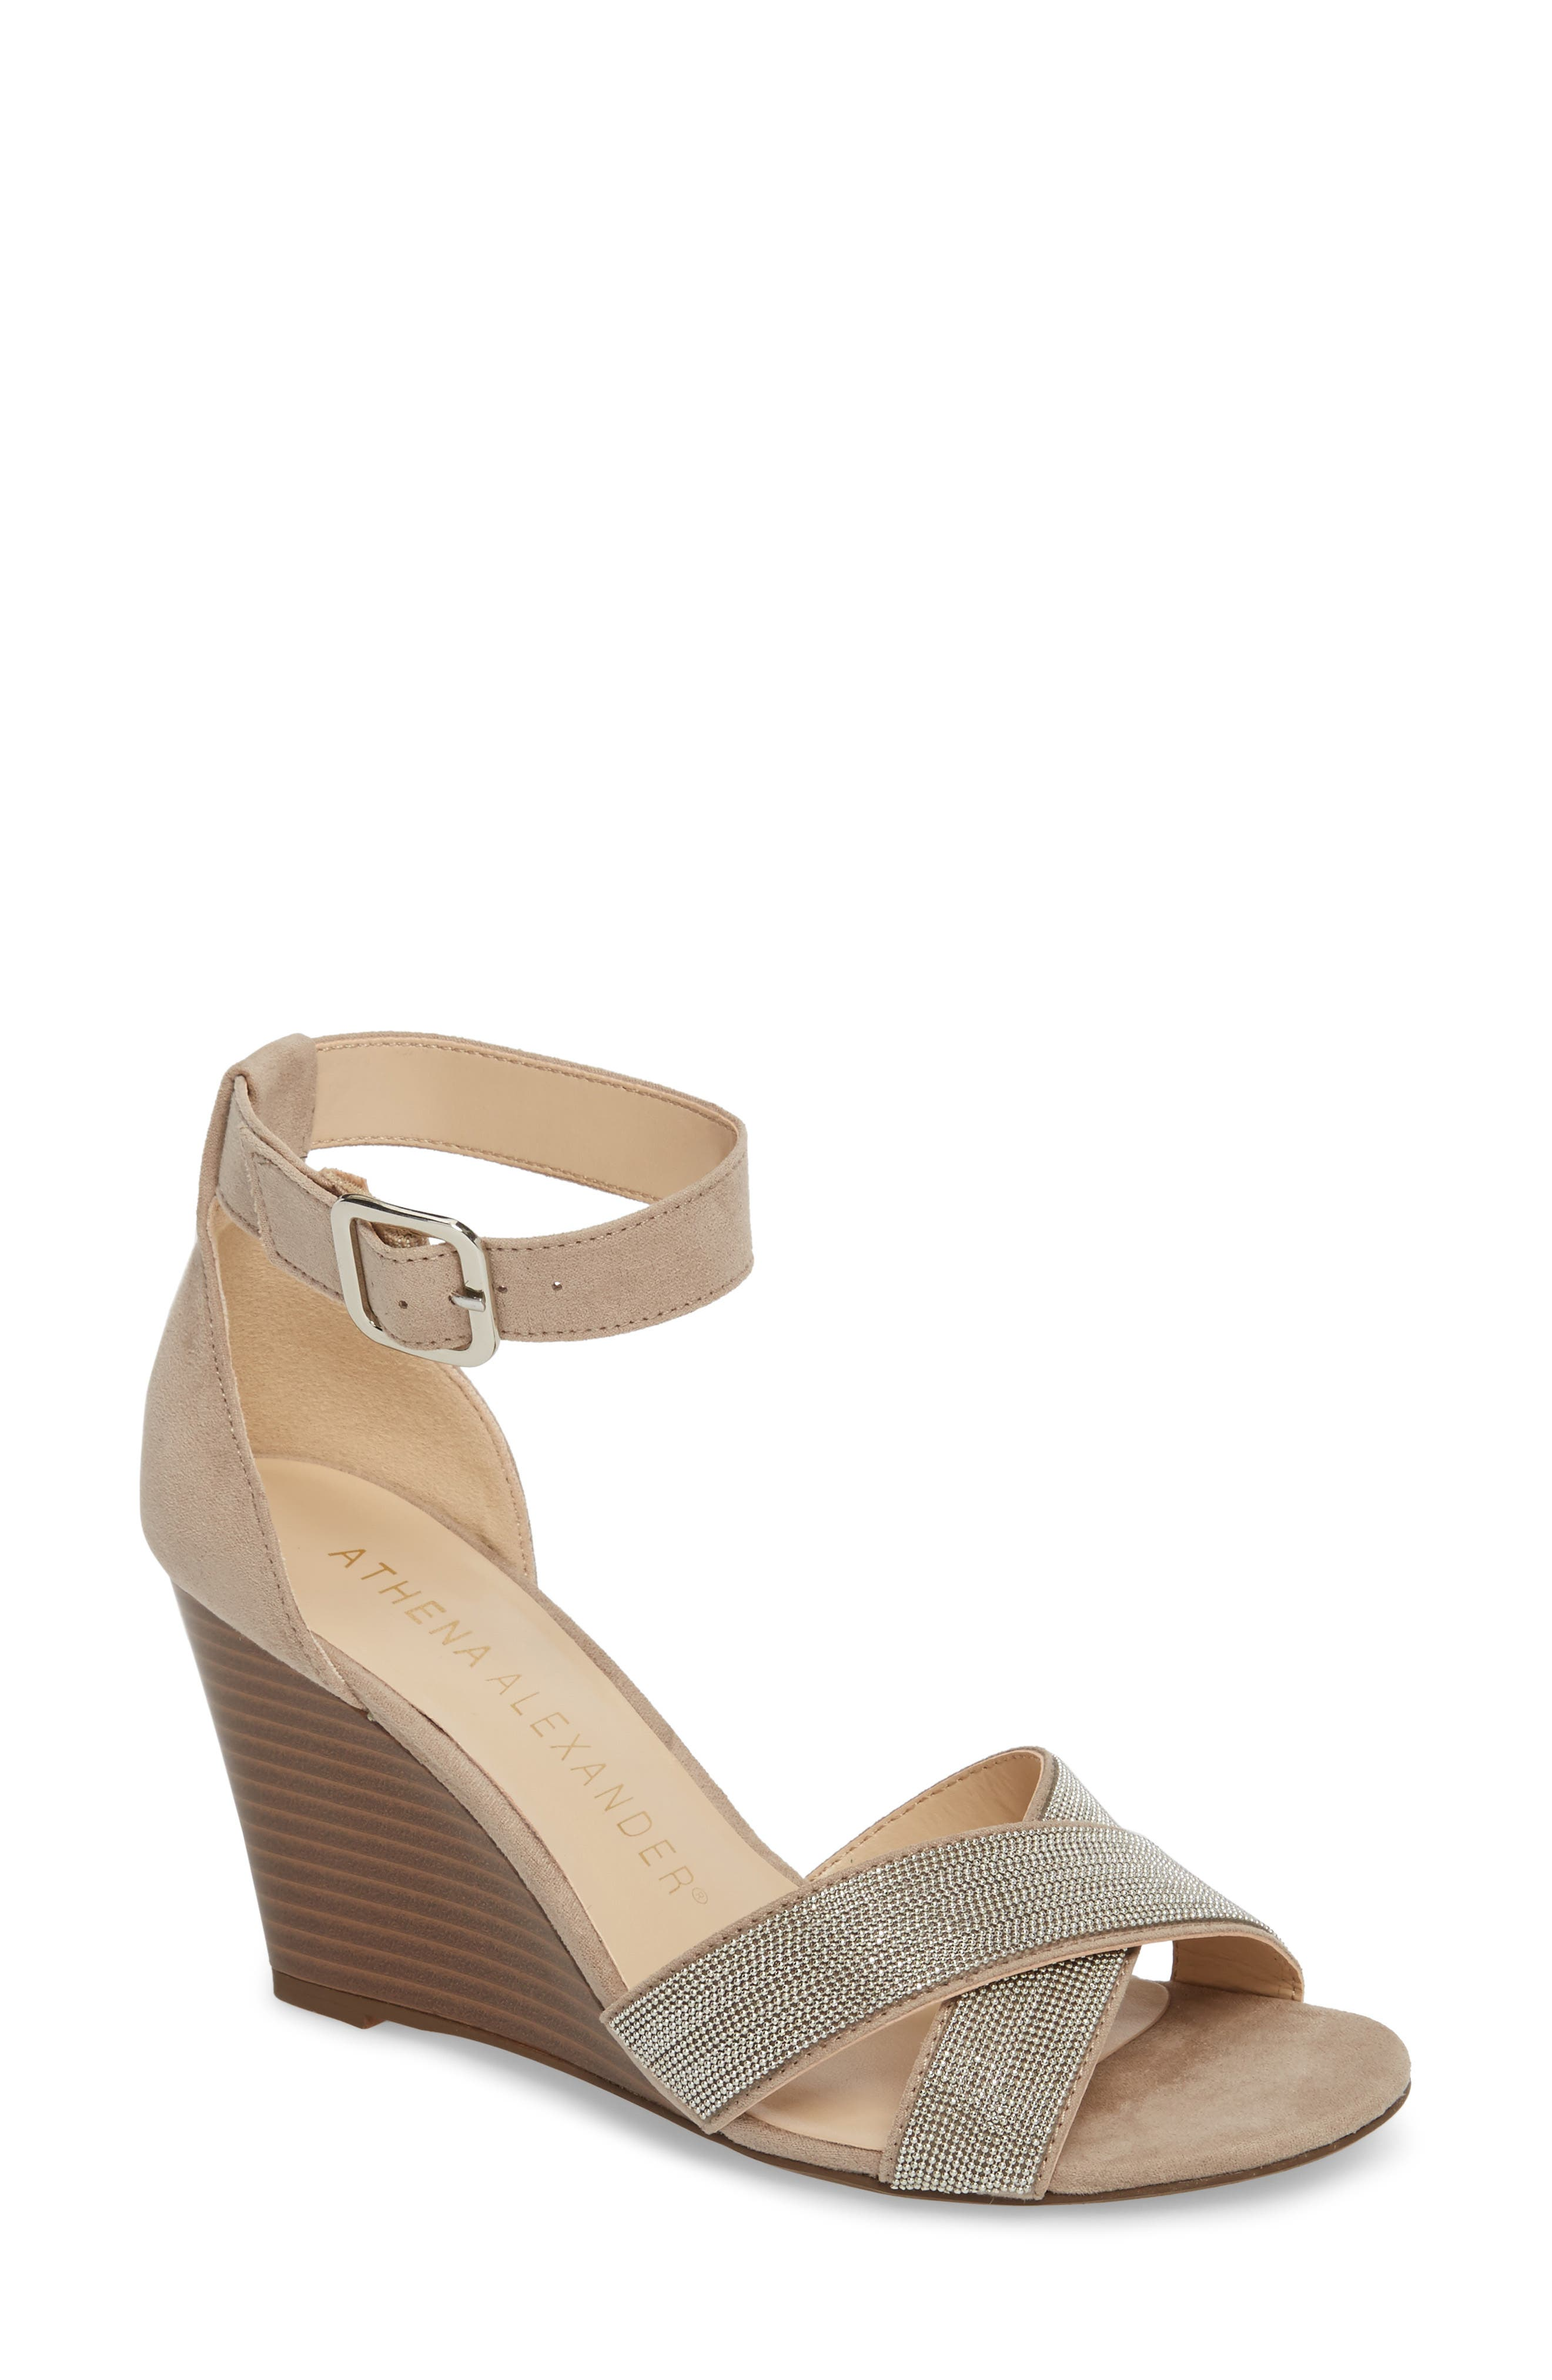 Zorra Wedge Sandal,                         Main,                         color, TAUPE SUEDE